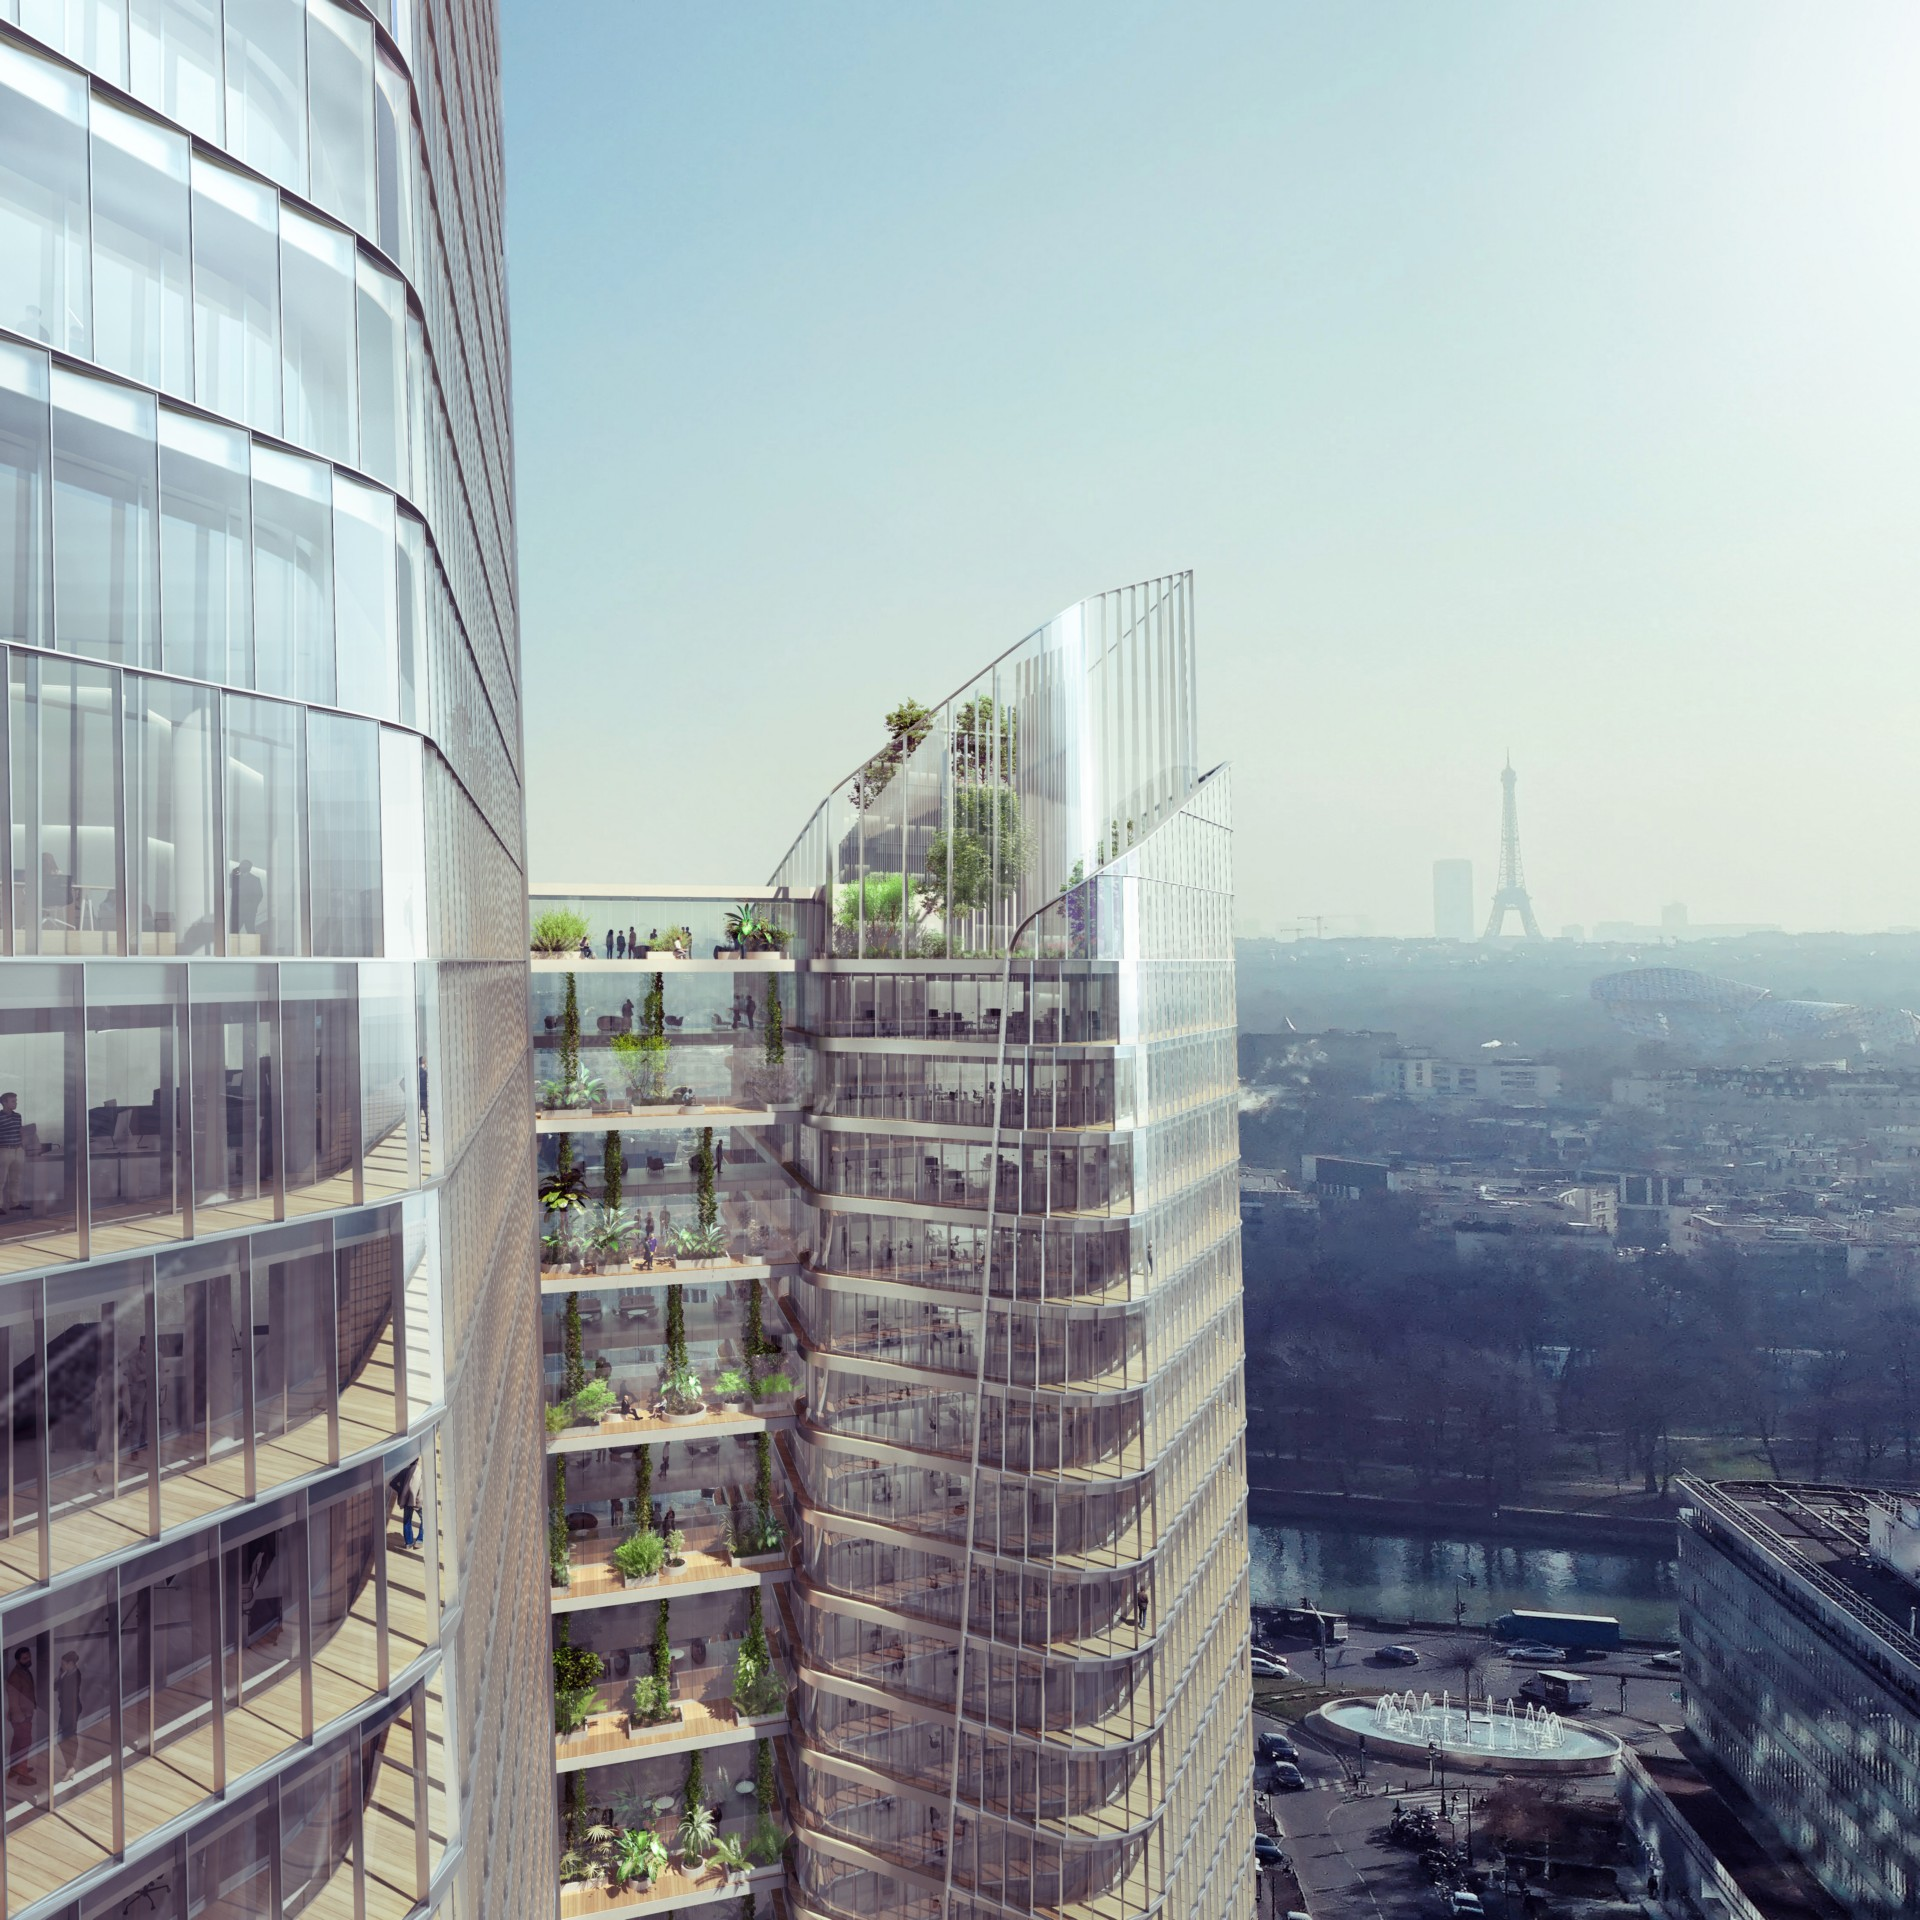 PCA-STREAM the Link nuovo landmark urbano per Parigi